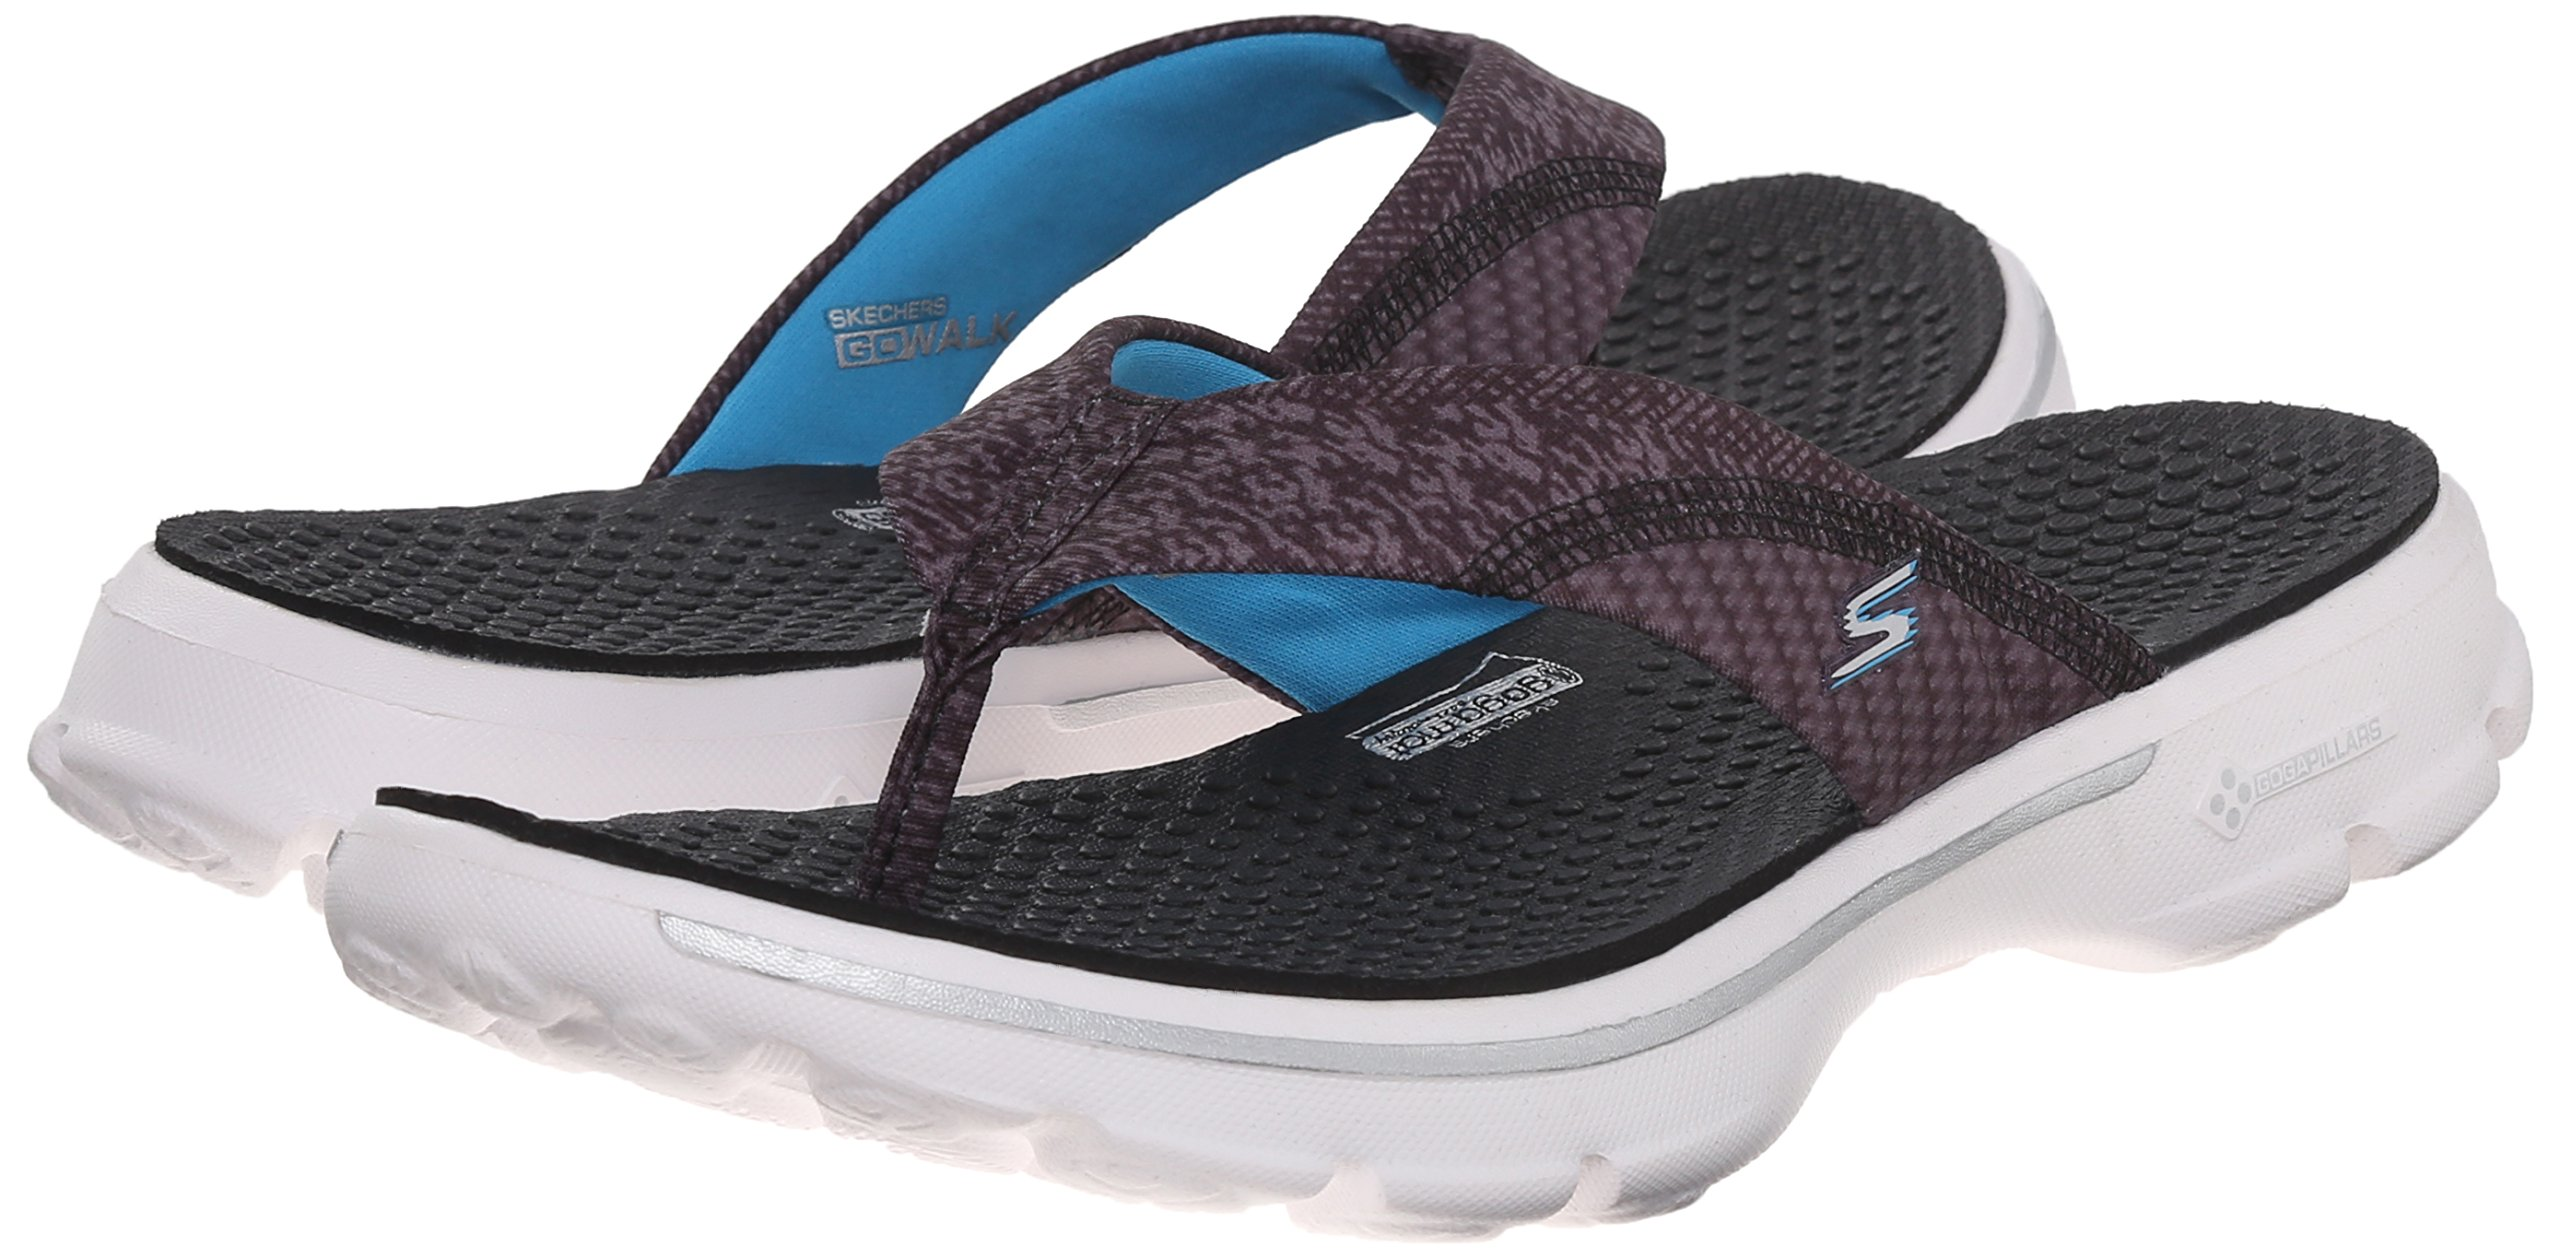 5 Lightweight and Comfortable Flip Flops for Travelling